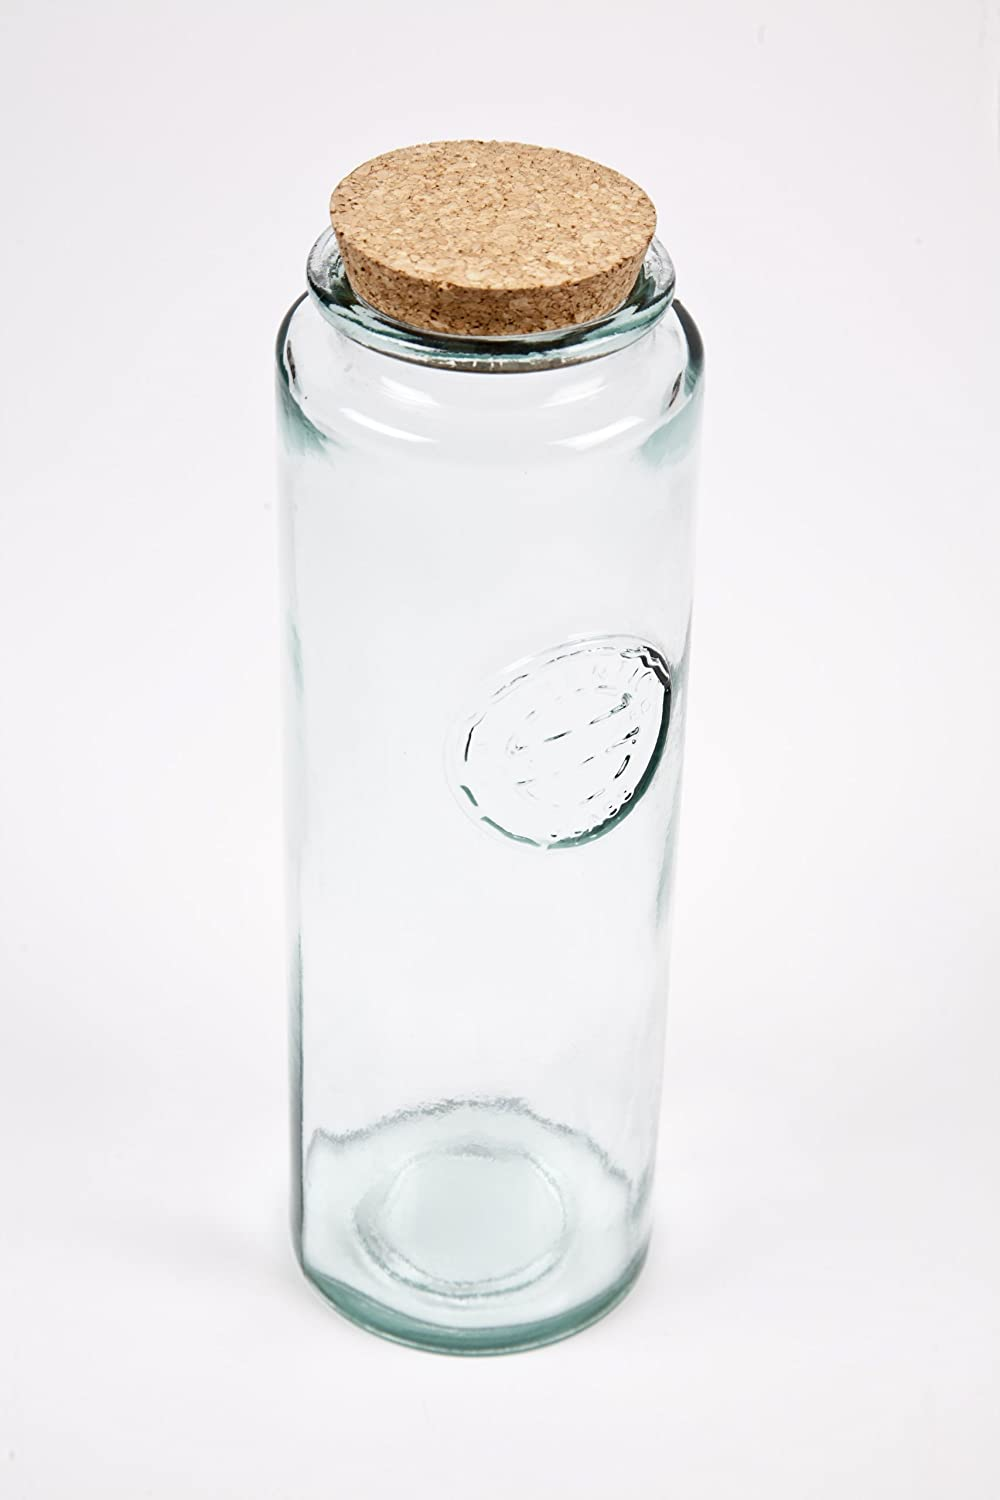 100% recycled glass 30cm high spagetti jar with 'Authentic' stamp in relief San Miguel